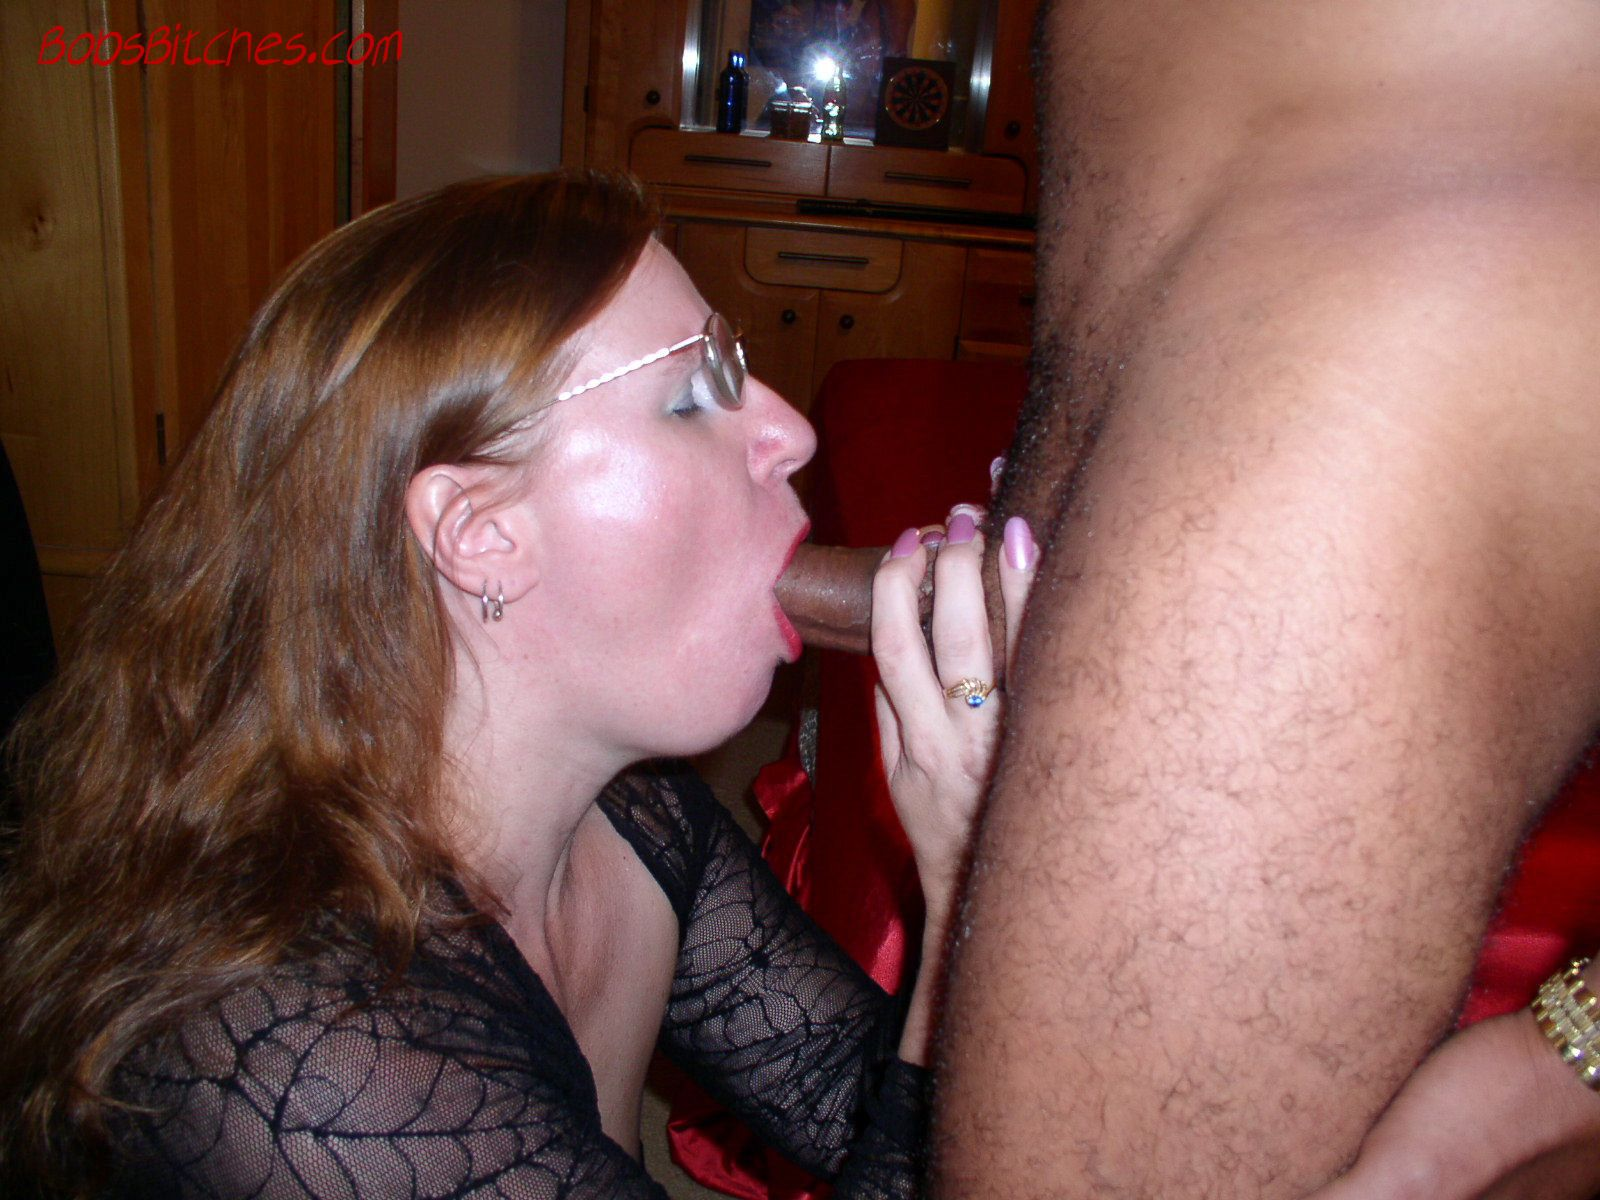 Whir wife deep throats a black cock while her husband watches and photographs.